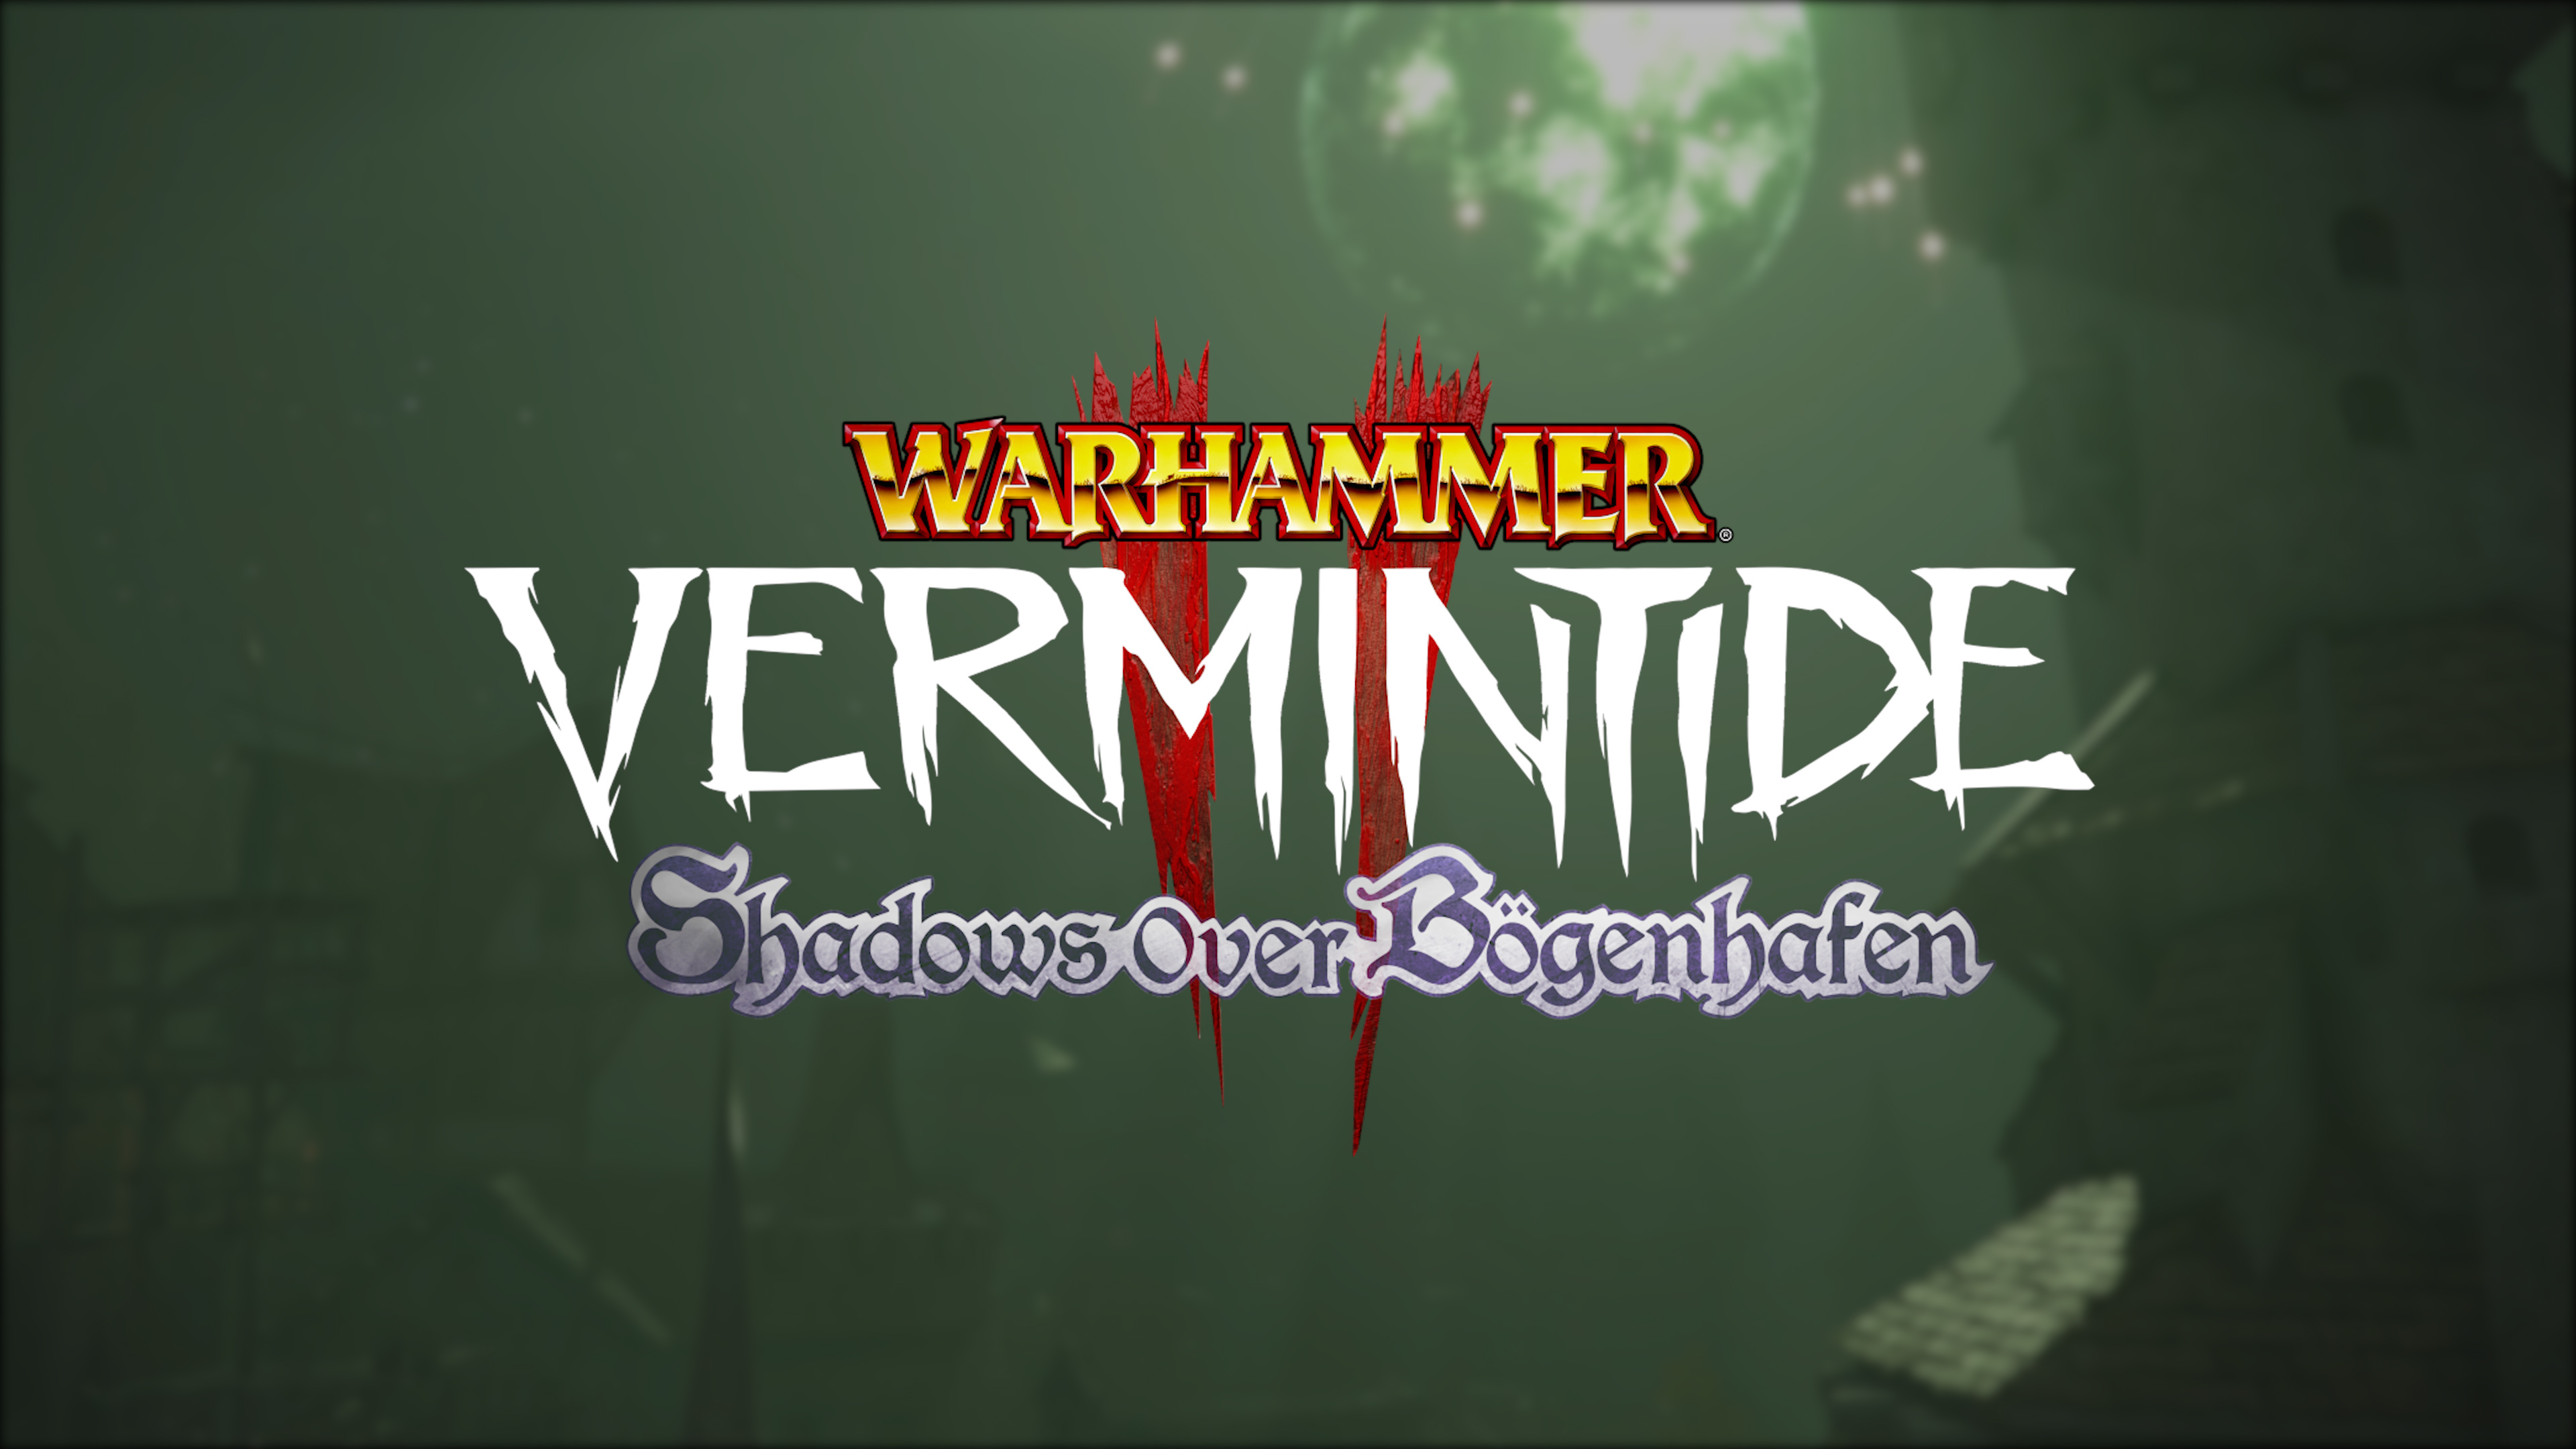 Shadows Over Bögenhafen' - Patch 1 2 beta now live on PC - PC